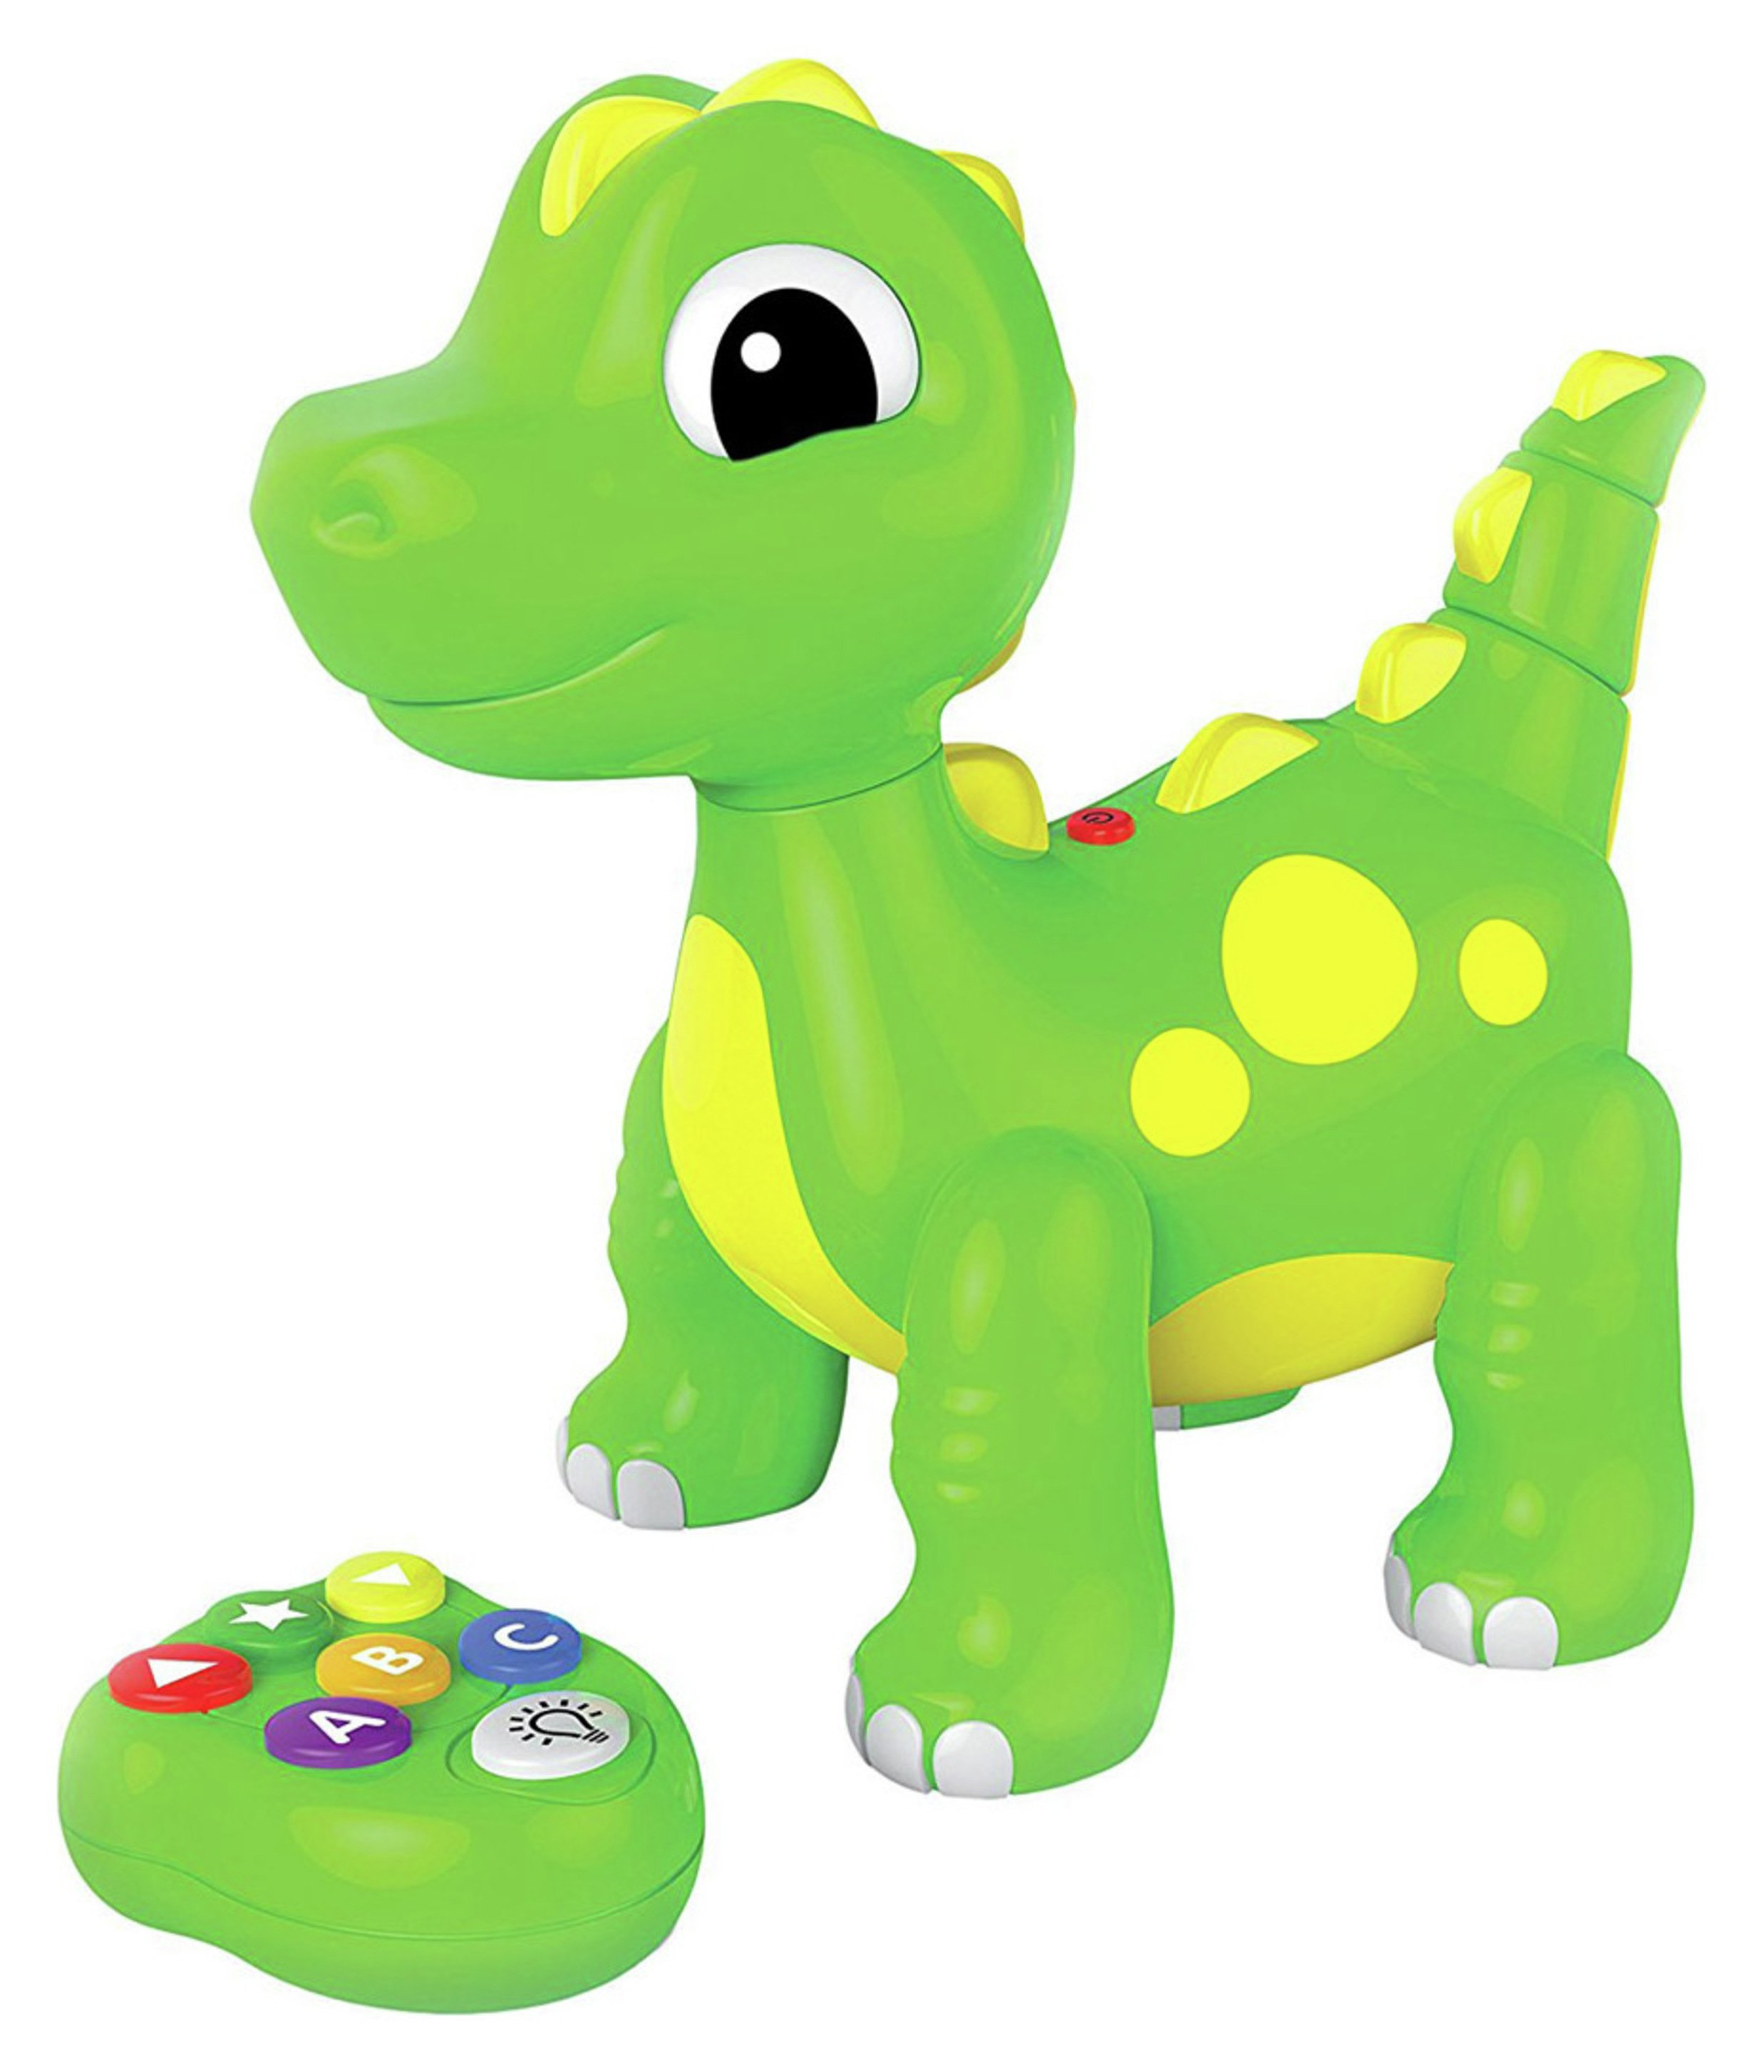 Remote Control ABC Dancing Dinosaur Playset. review